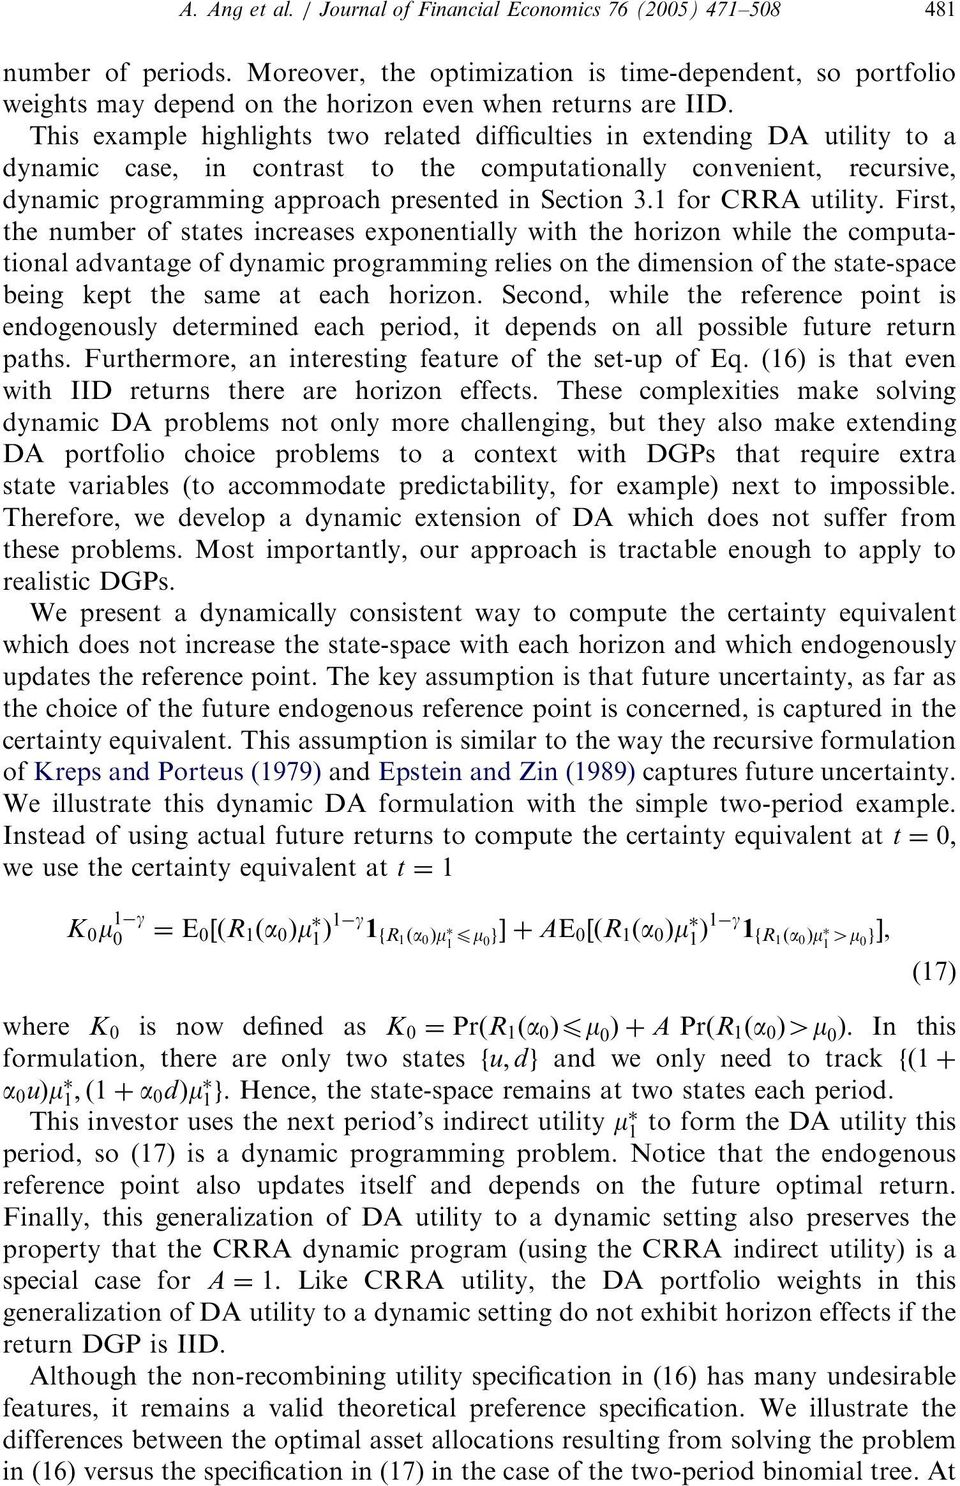 This example highlights two related difficulties in extending DA utility to a dynamic case, in contrast to the computationally convenient, recursive, dynamic programming approach presented in Section